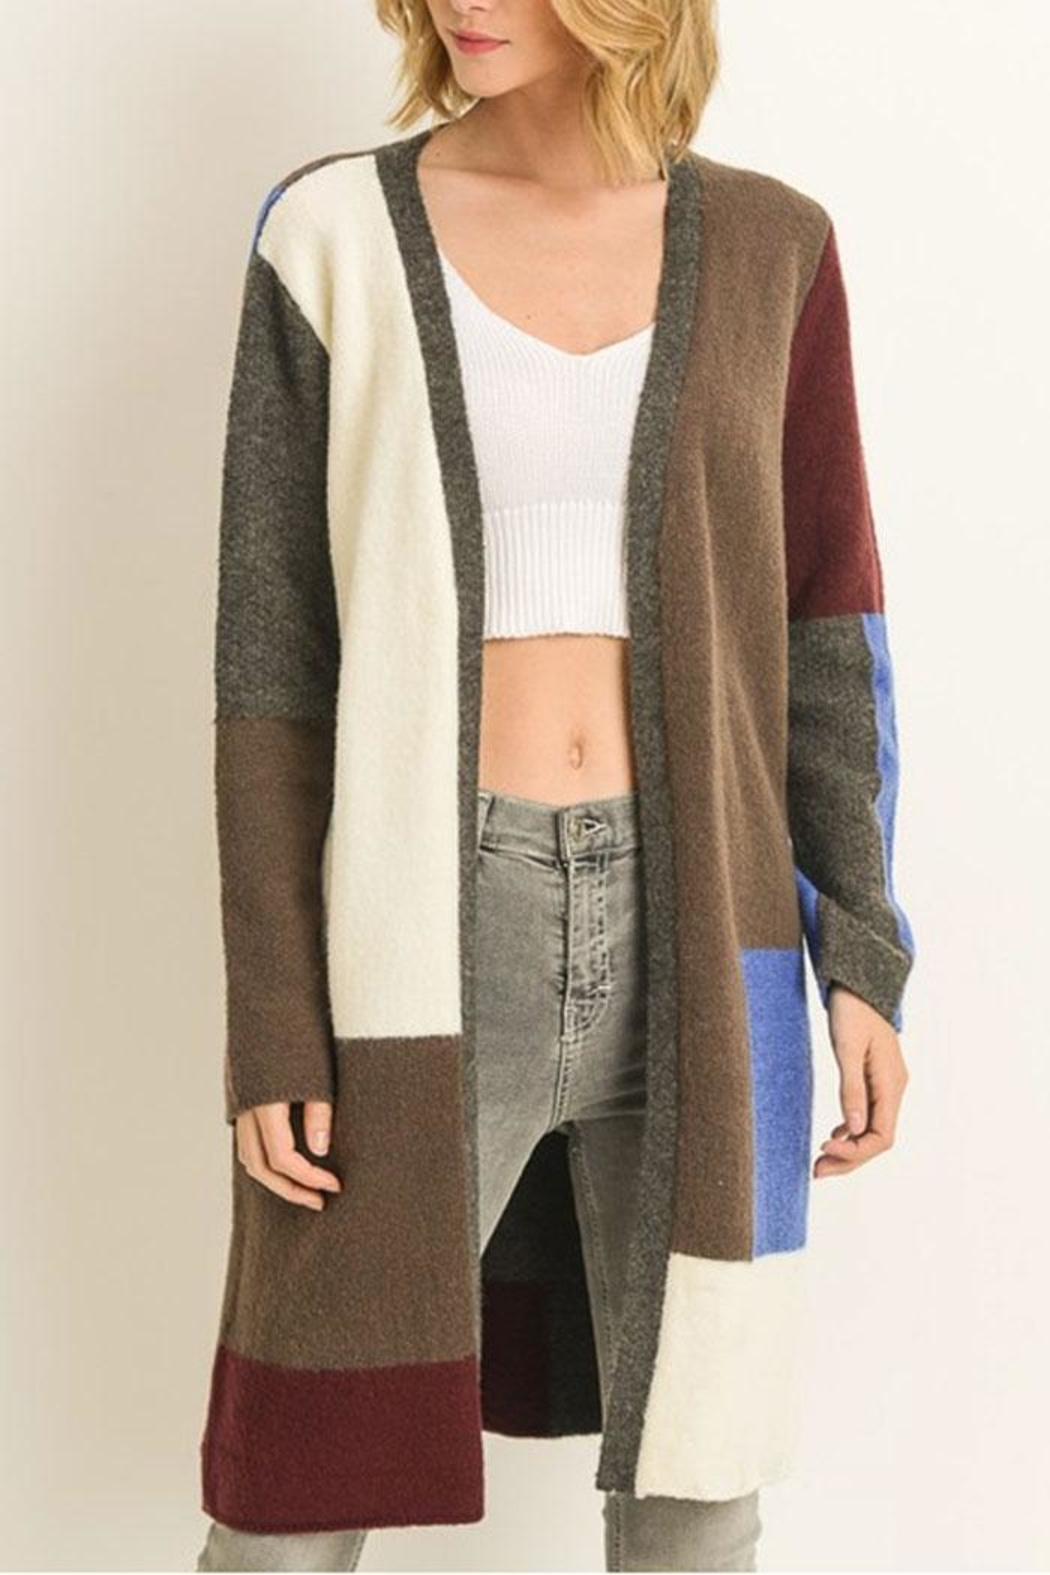 Le Lis Color-Block Cardigan from New York by Runway   Rose — Shoptiques cc3525c8f